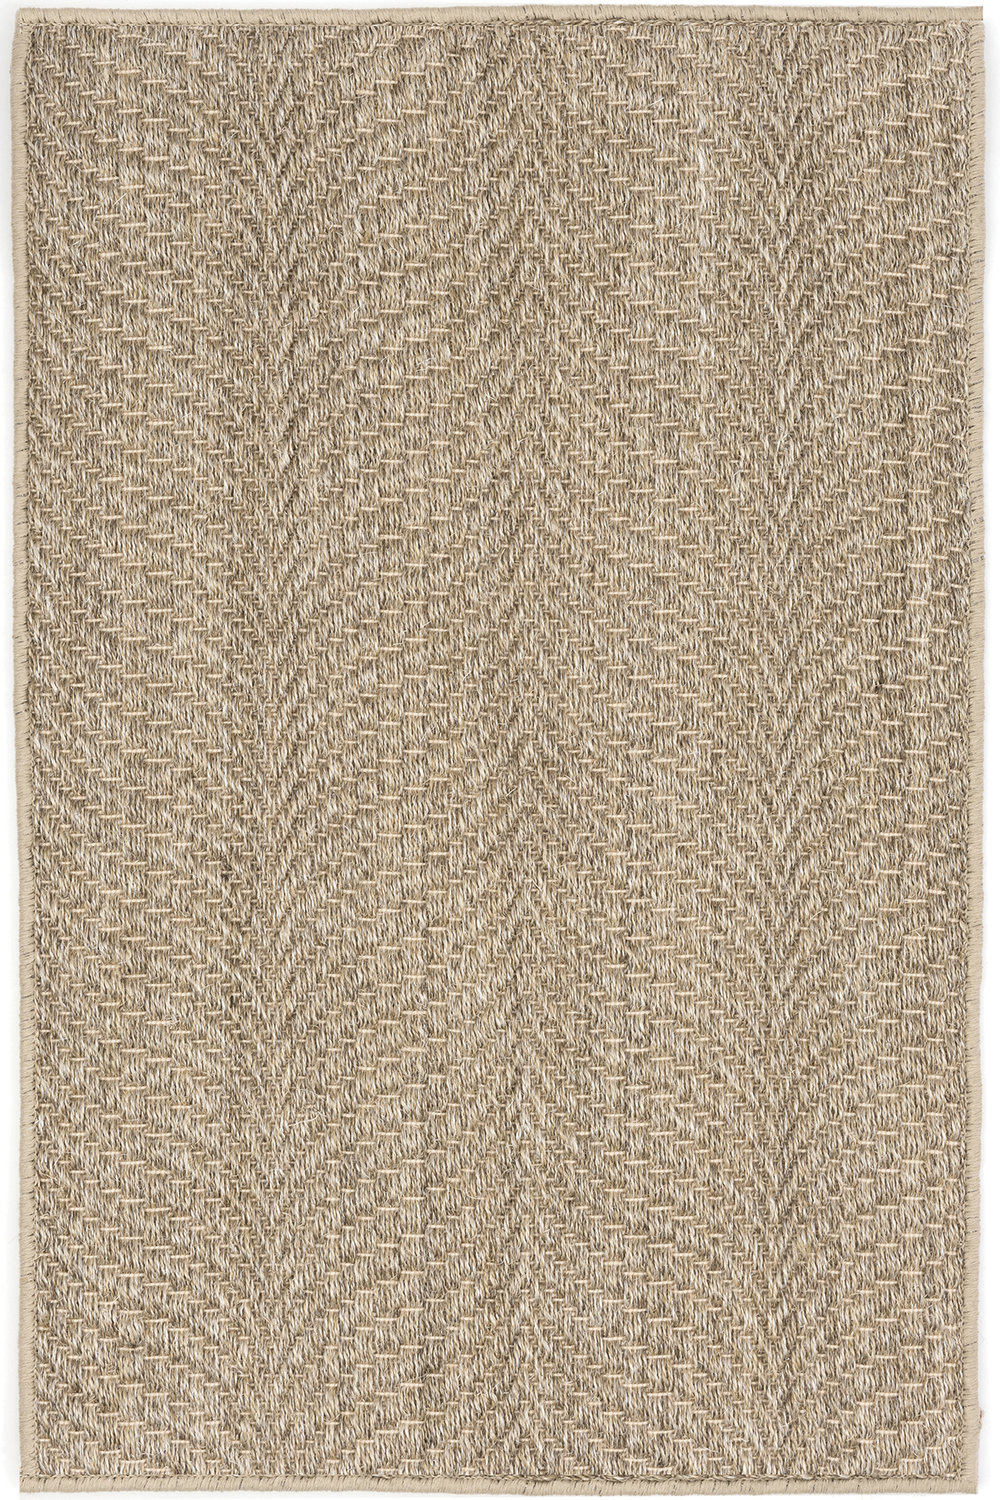 Adding a chunky and textural woven seagrass rug brings in natural elements and is a nod to the rugs found in Asia and the South Pacific.